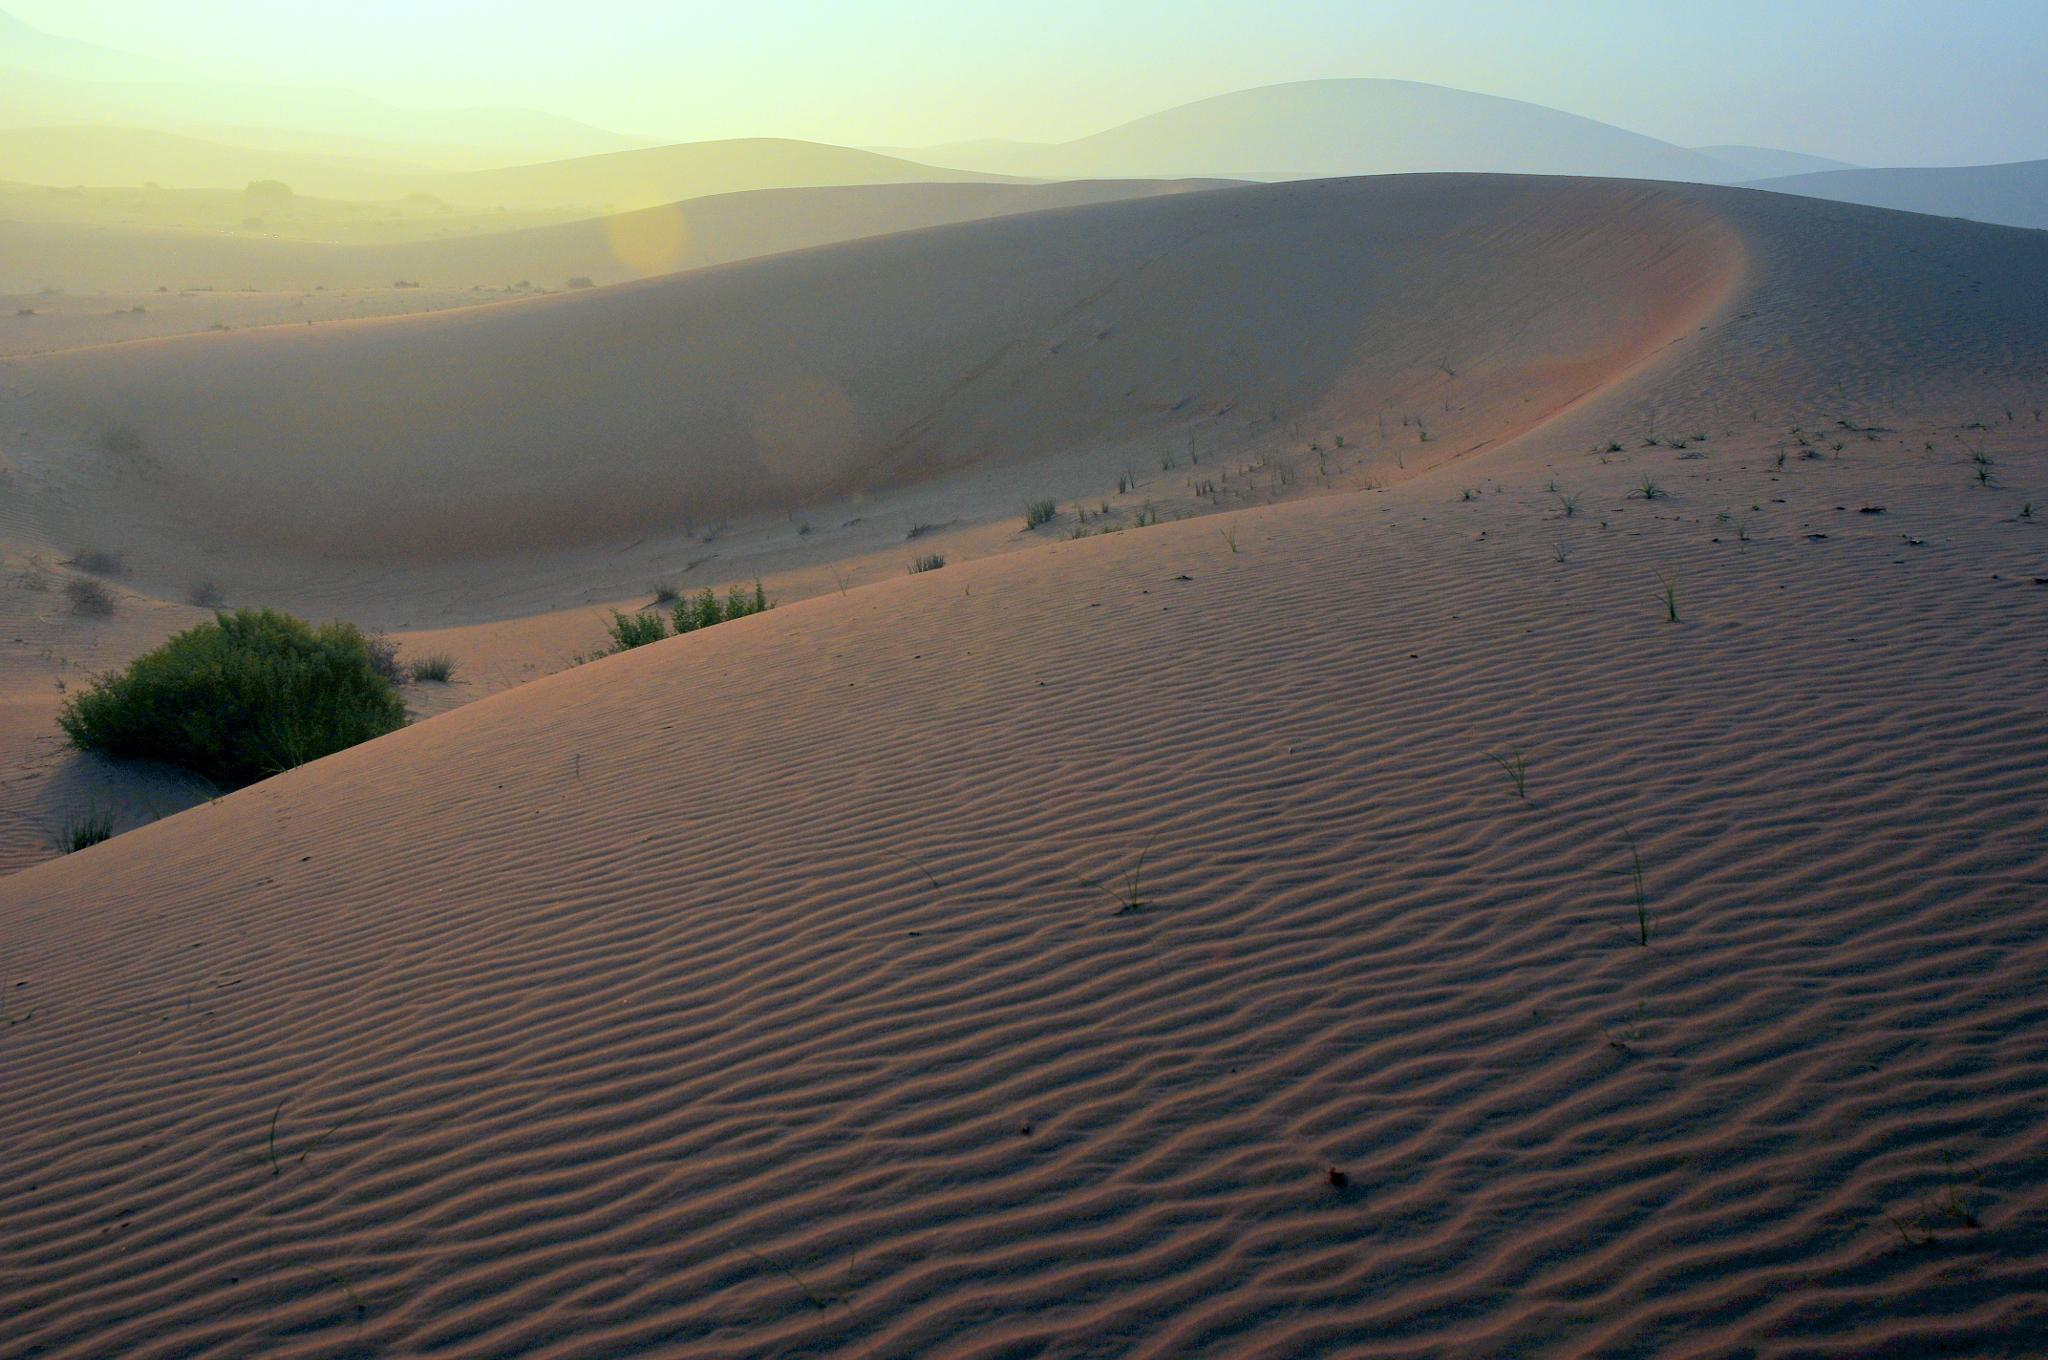 an impression of the desert by jimeier f.